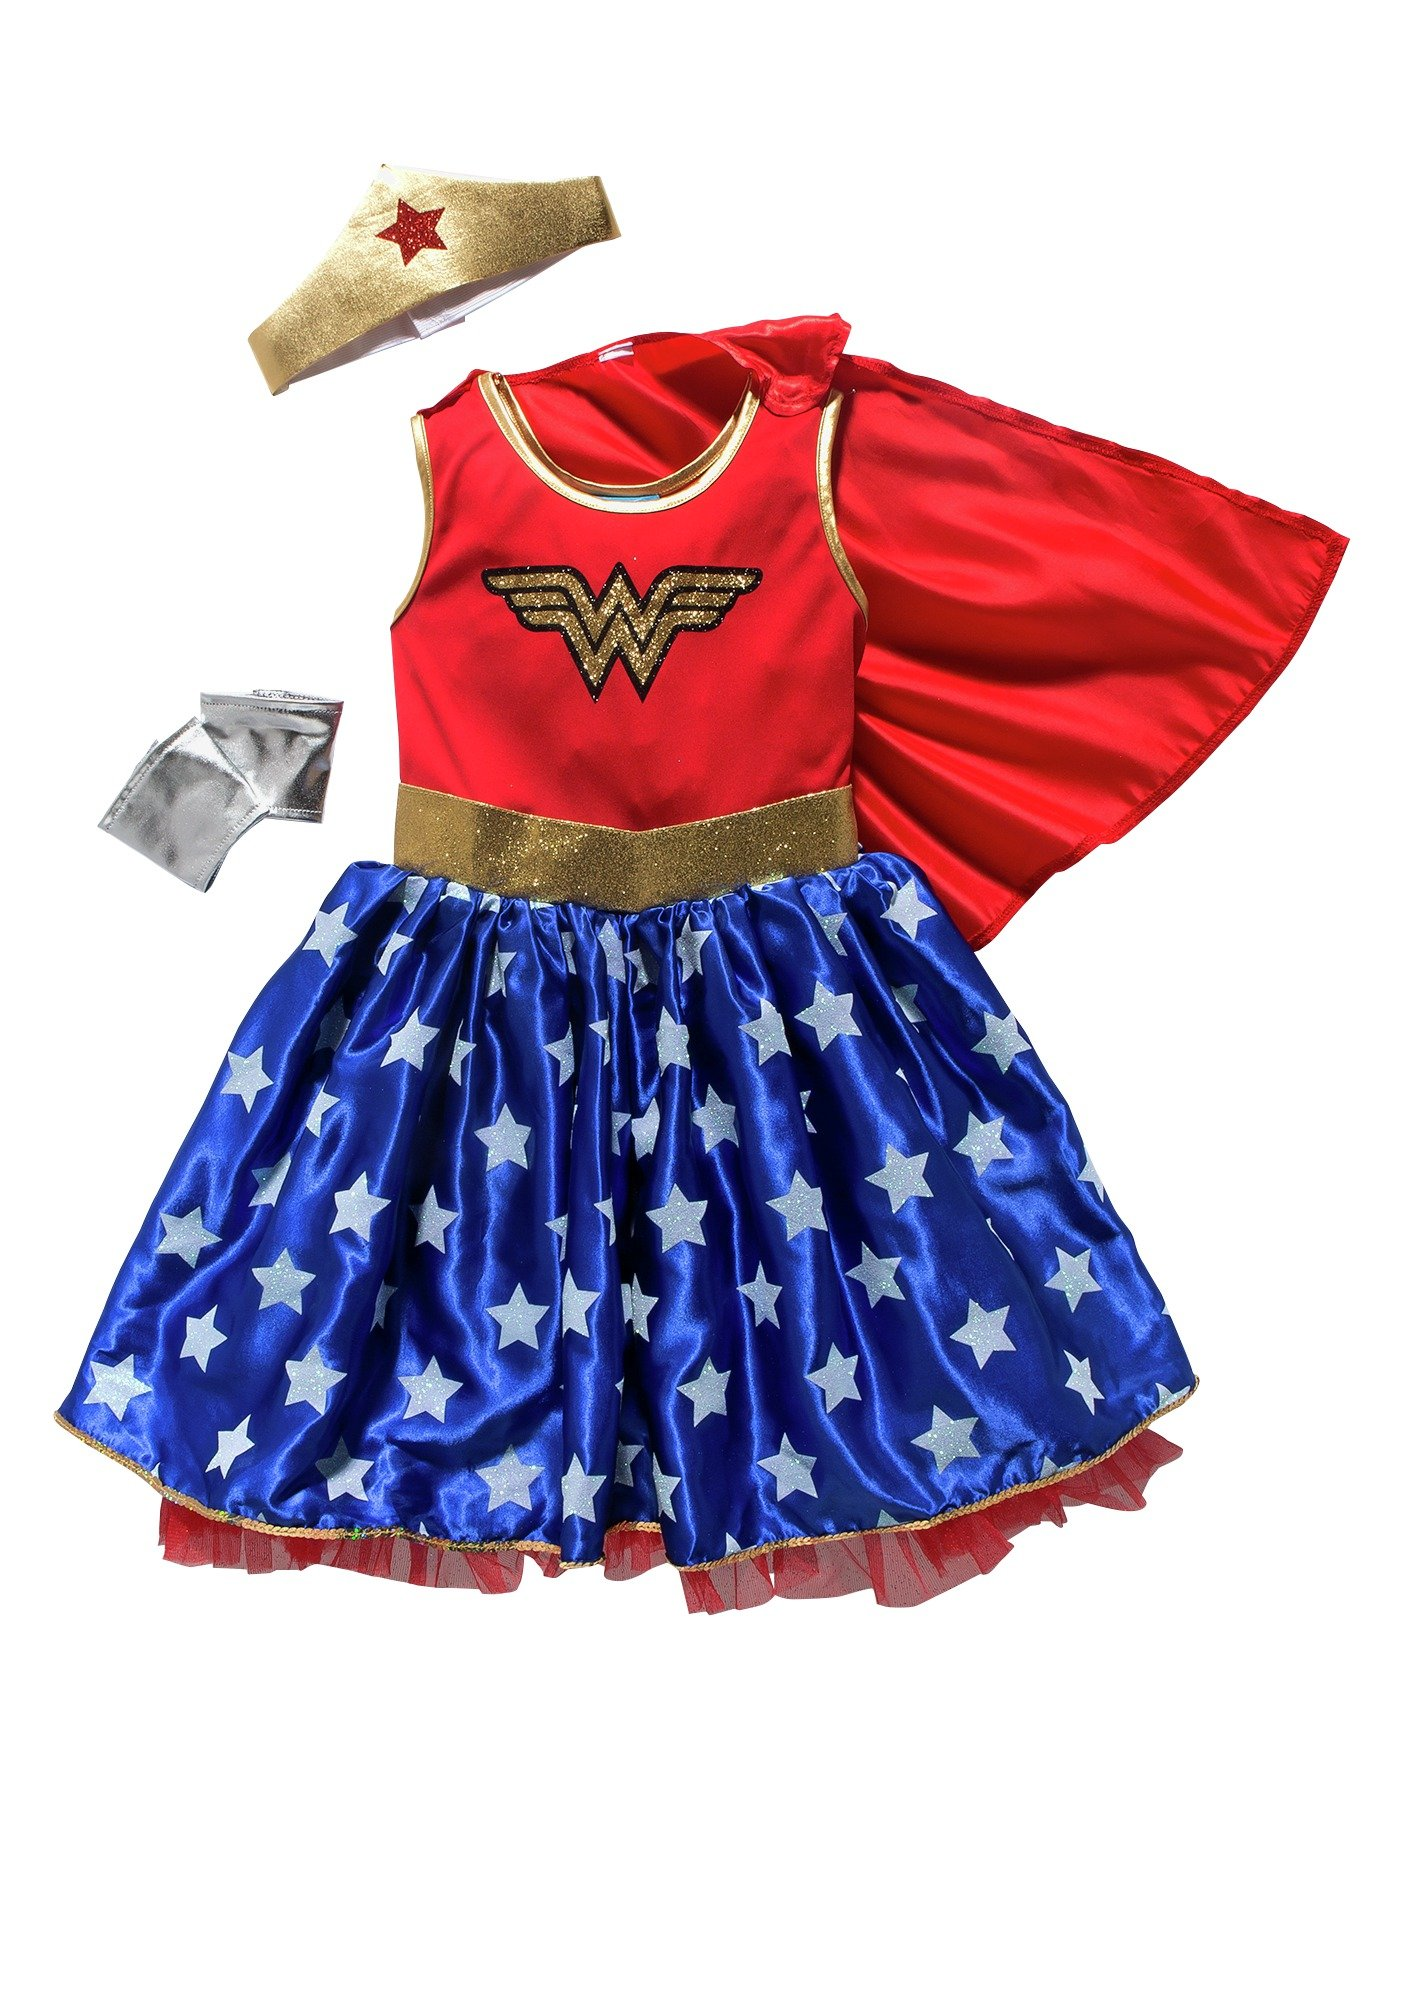 DC Wonder Woman Children's Fancy Dress Costume - 7-8 Years